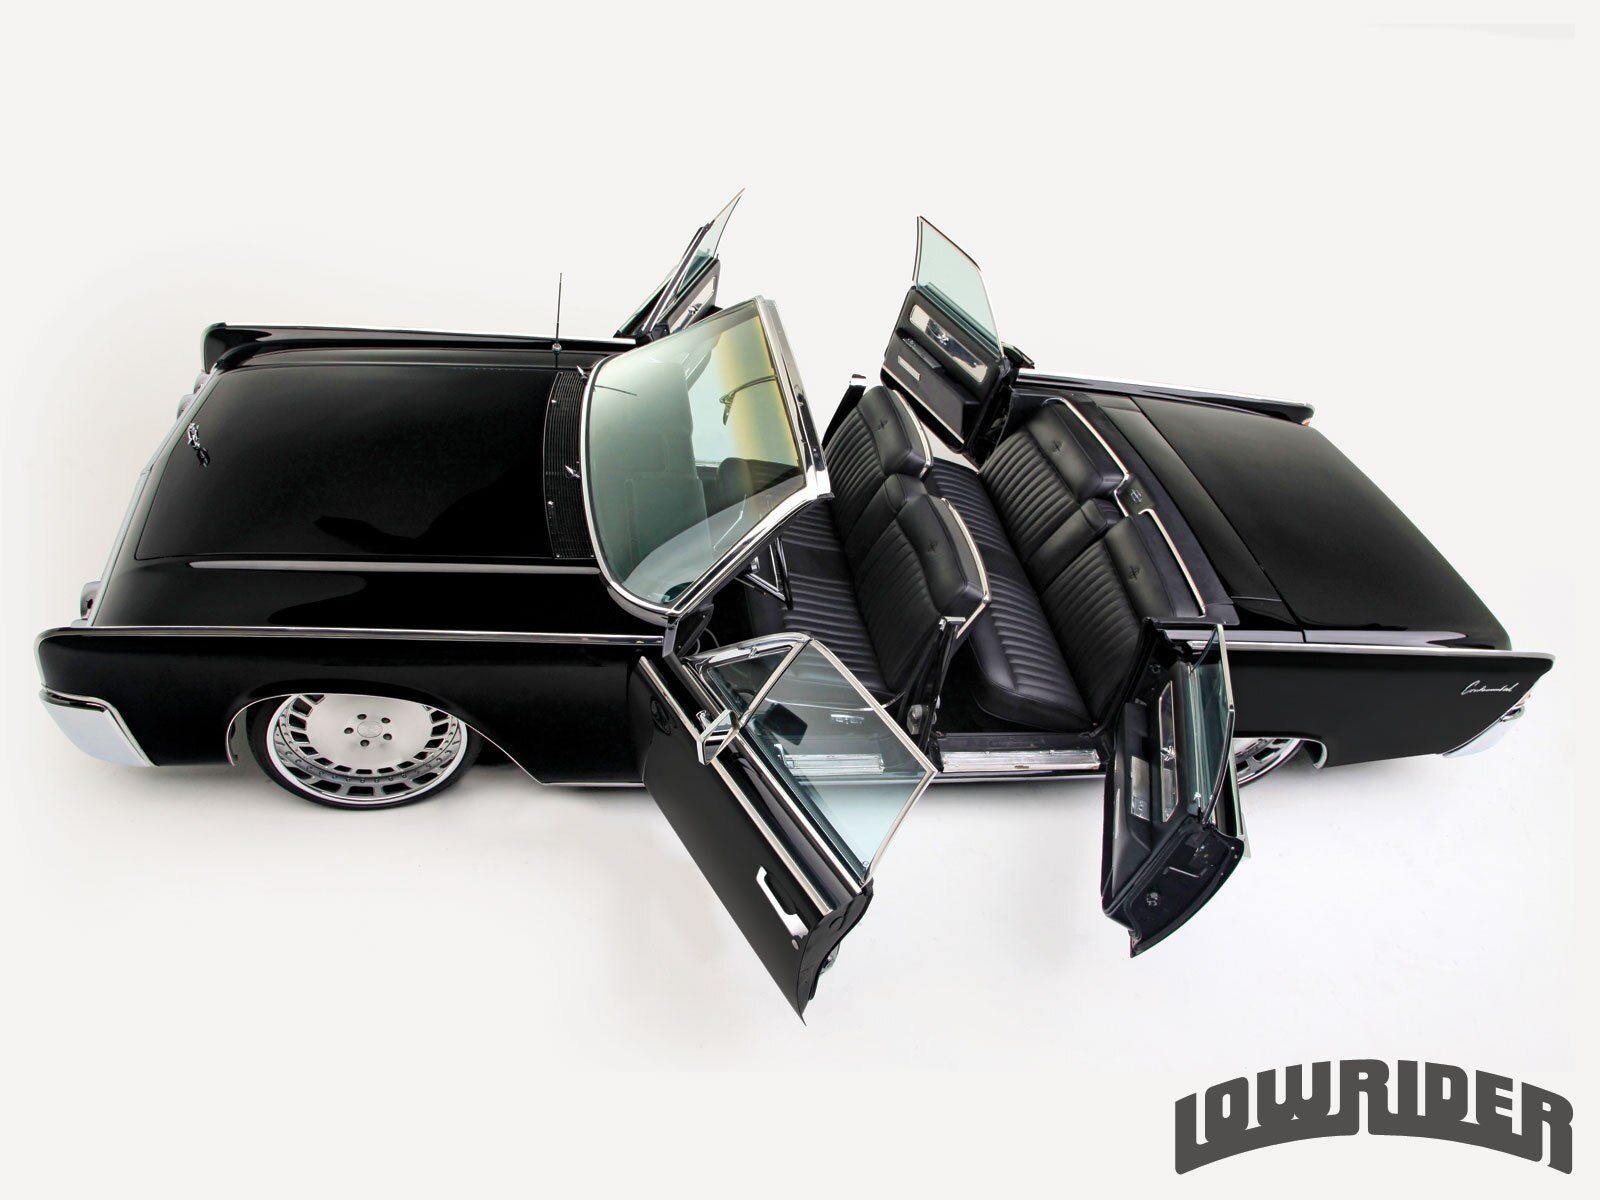 1212-lrmp-01-o-1963-lincoln-continental-convertible-suicide-doors1